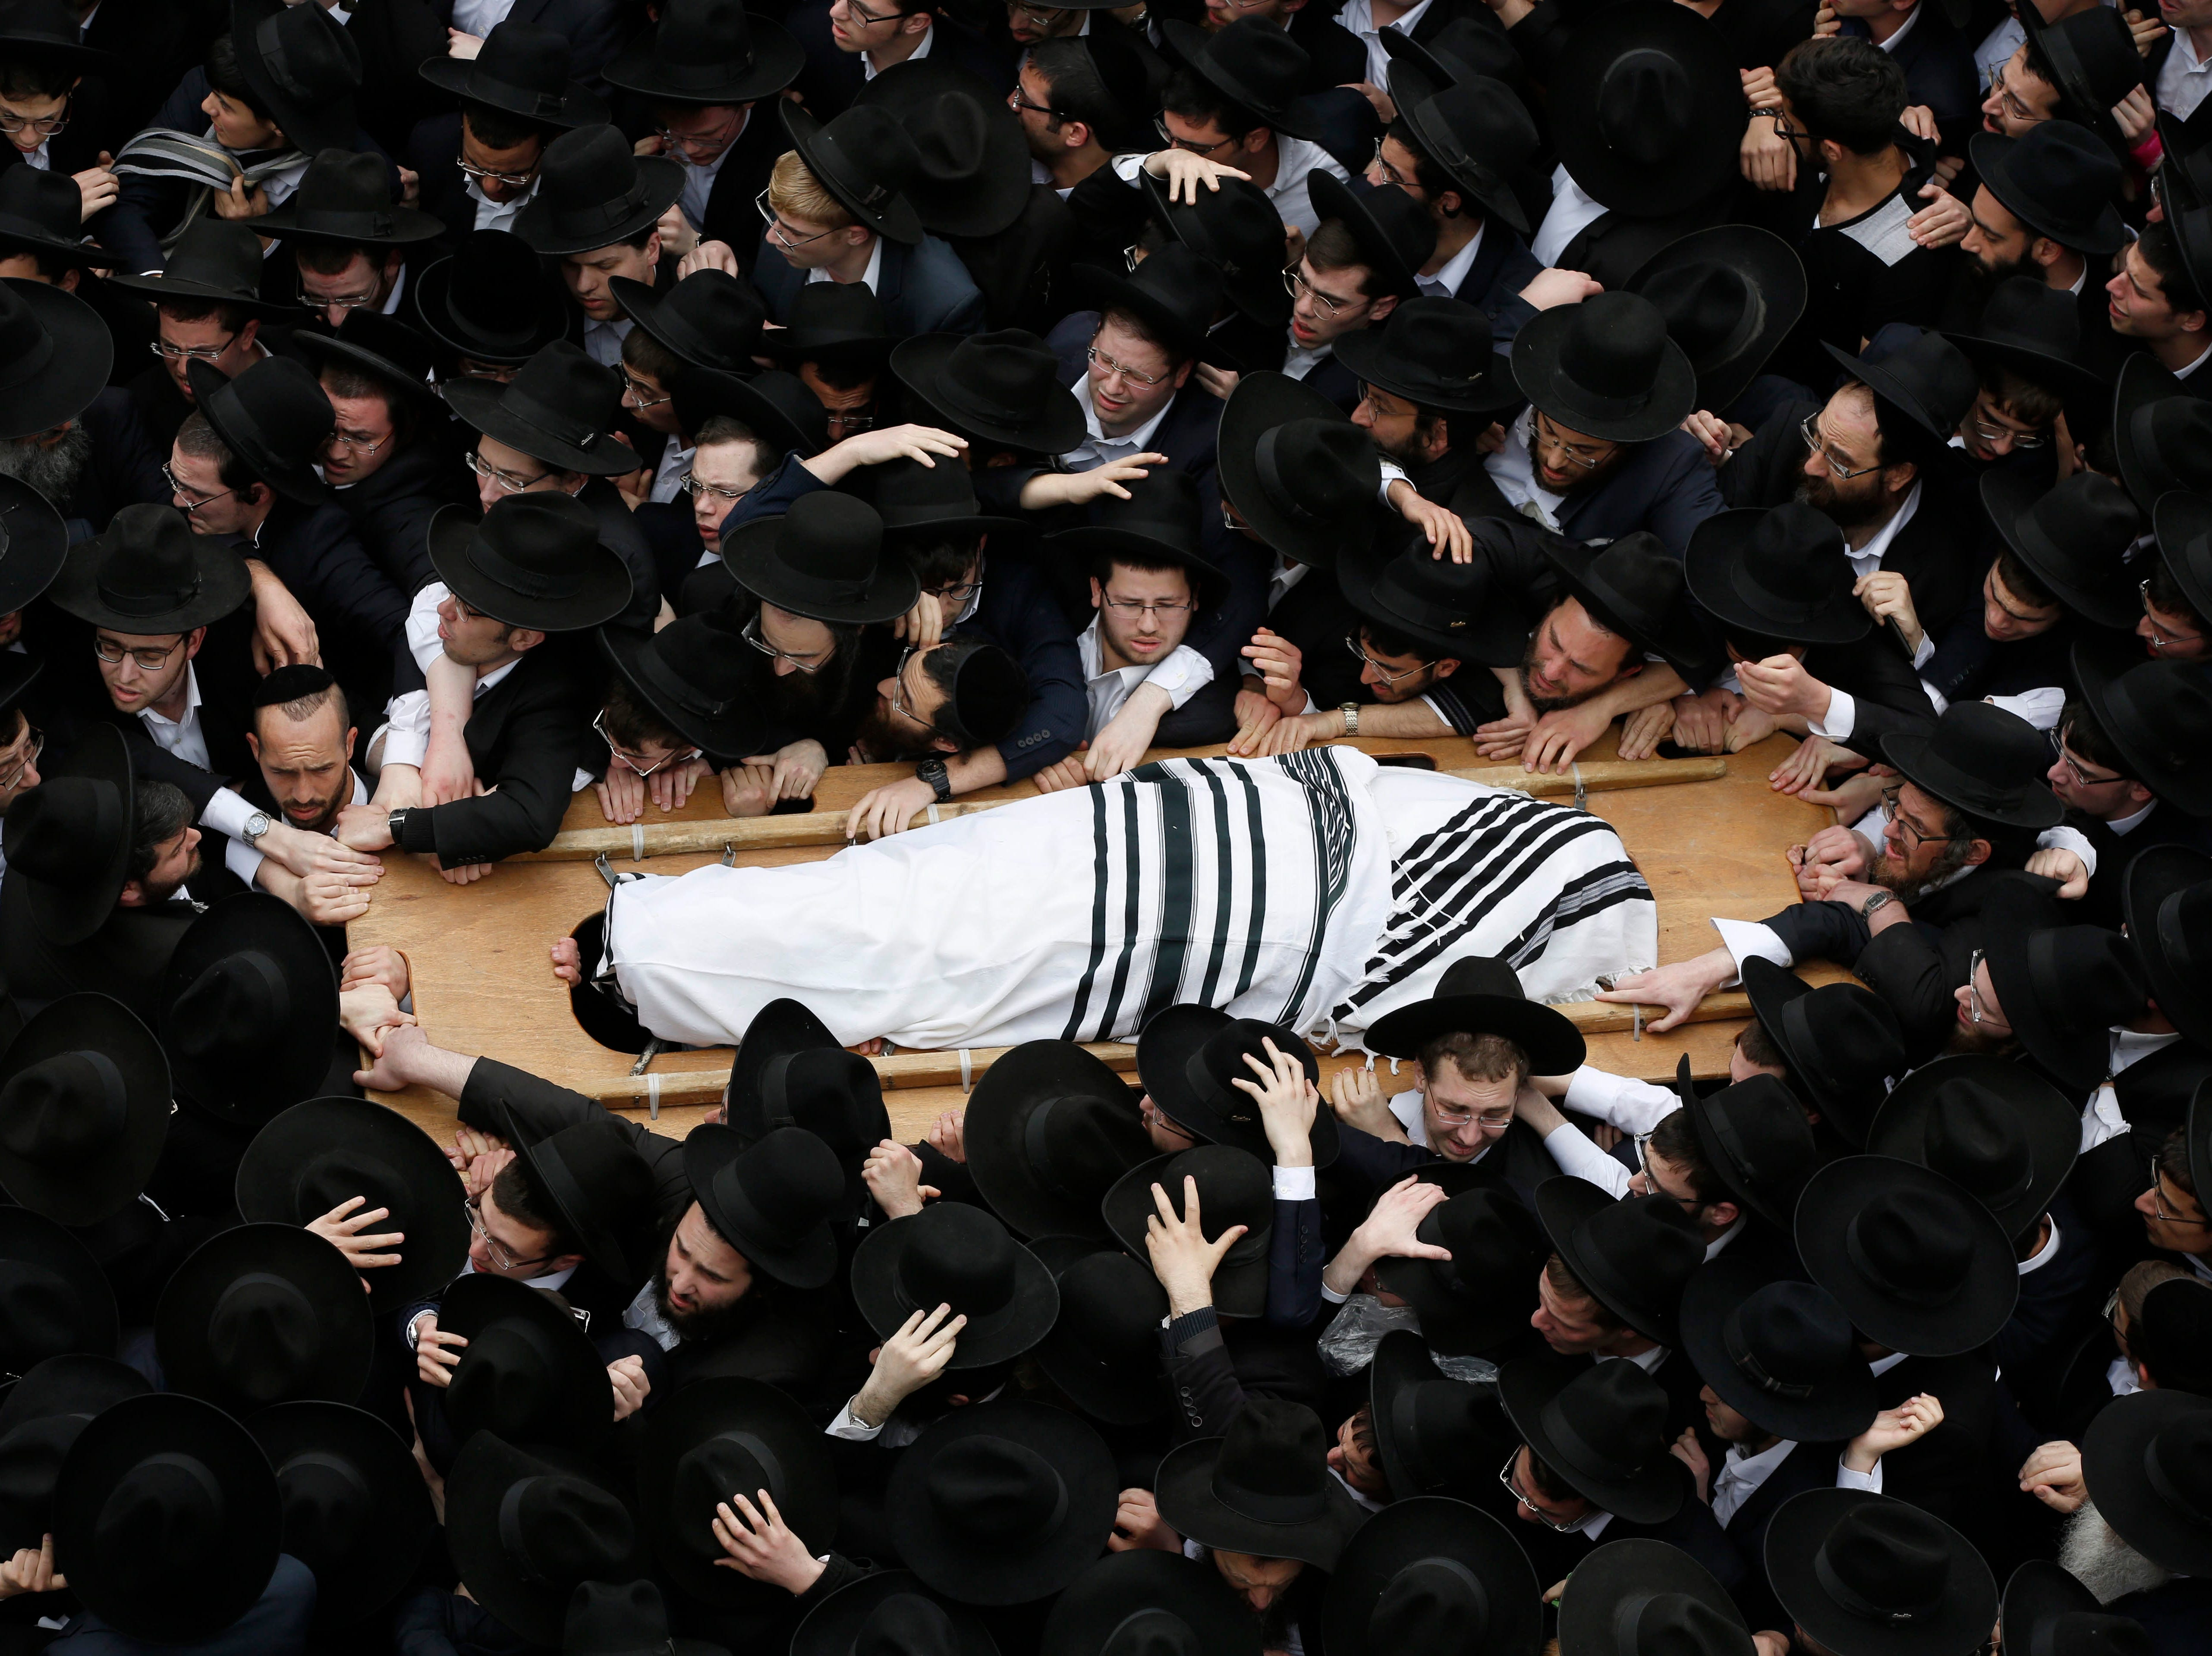 Feb. 25, 2018: Ultra Orthodox Jews gather around the body of late Rabbi Shmuel Auerbach, during his funeral ceremony in Jerusalem. Rabbi Shmuel Auerbach was the spiritual leader of the non-Hasidic Lithuanian believers, he died at the age of 86.